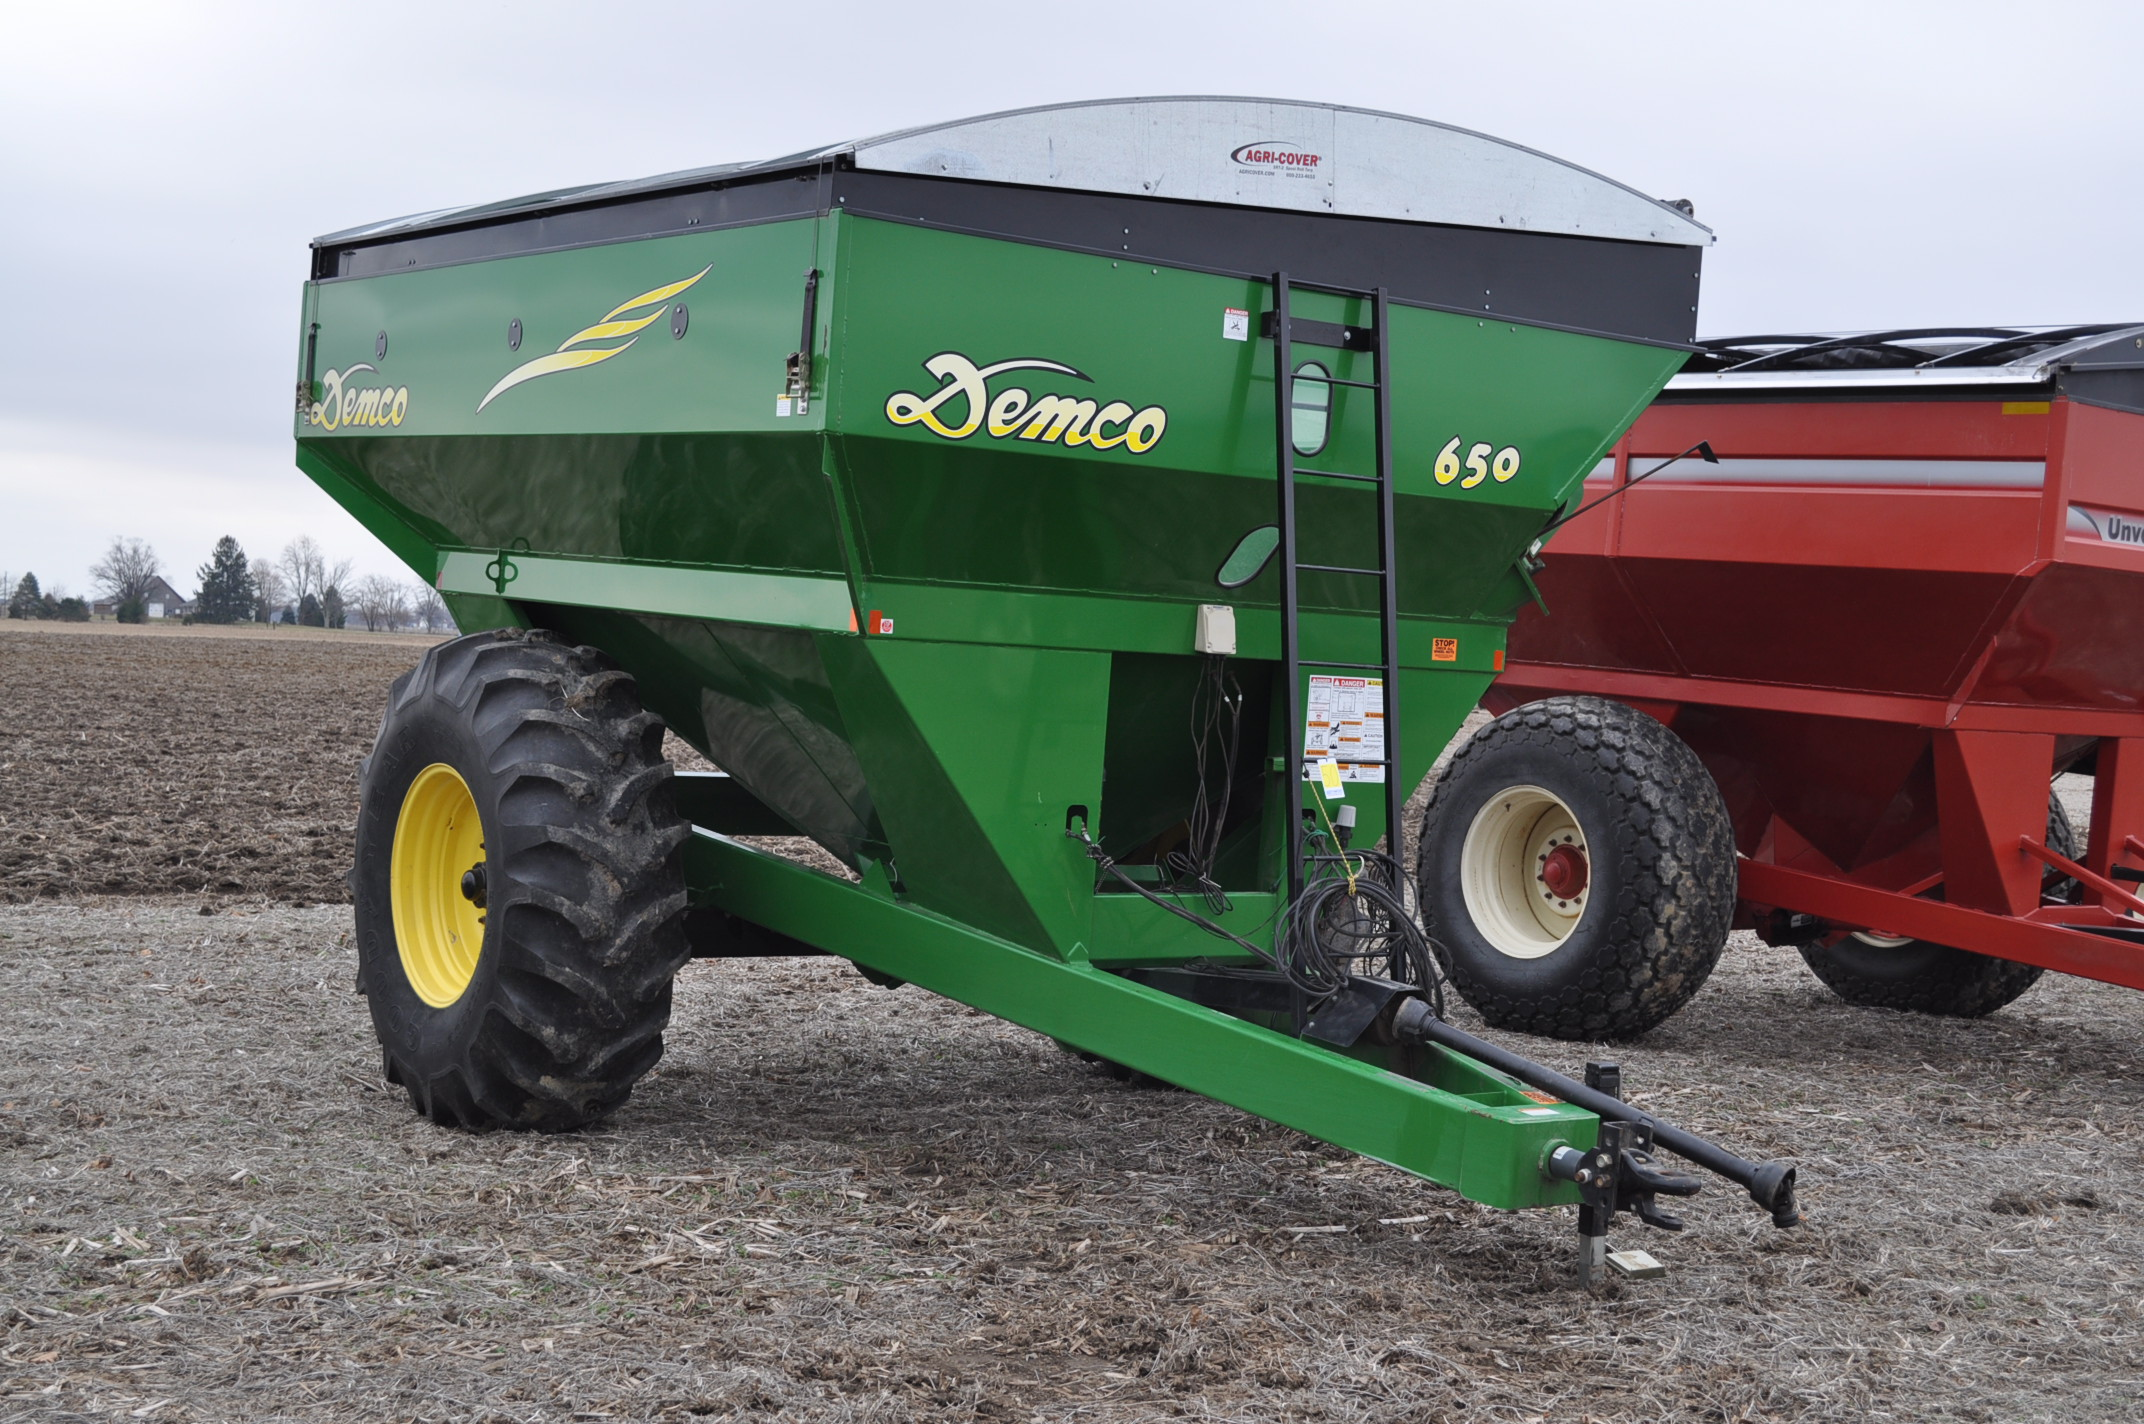 Demco 650 grain cart, 24.5-32 tires, roll tarp, hyd swing spout, Digistar scales, corner auger, rear - Image 4 of 12